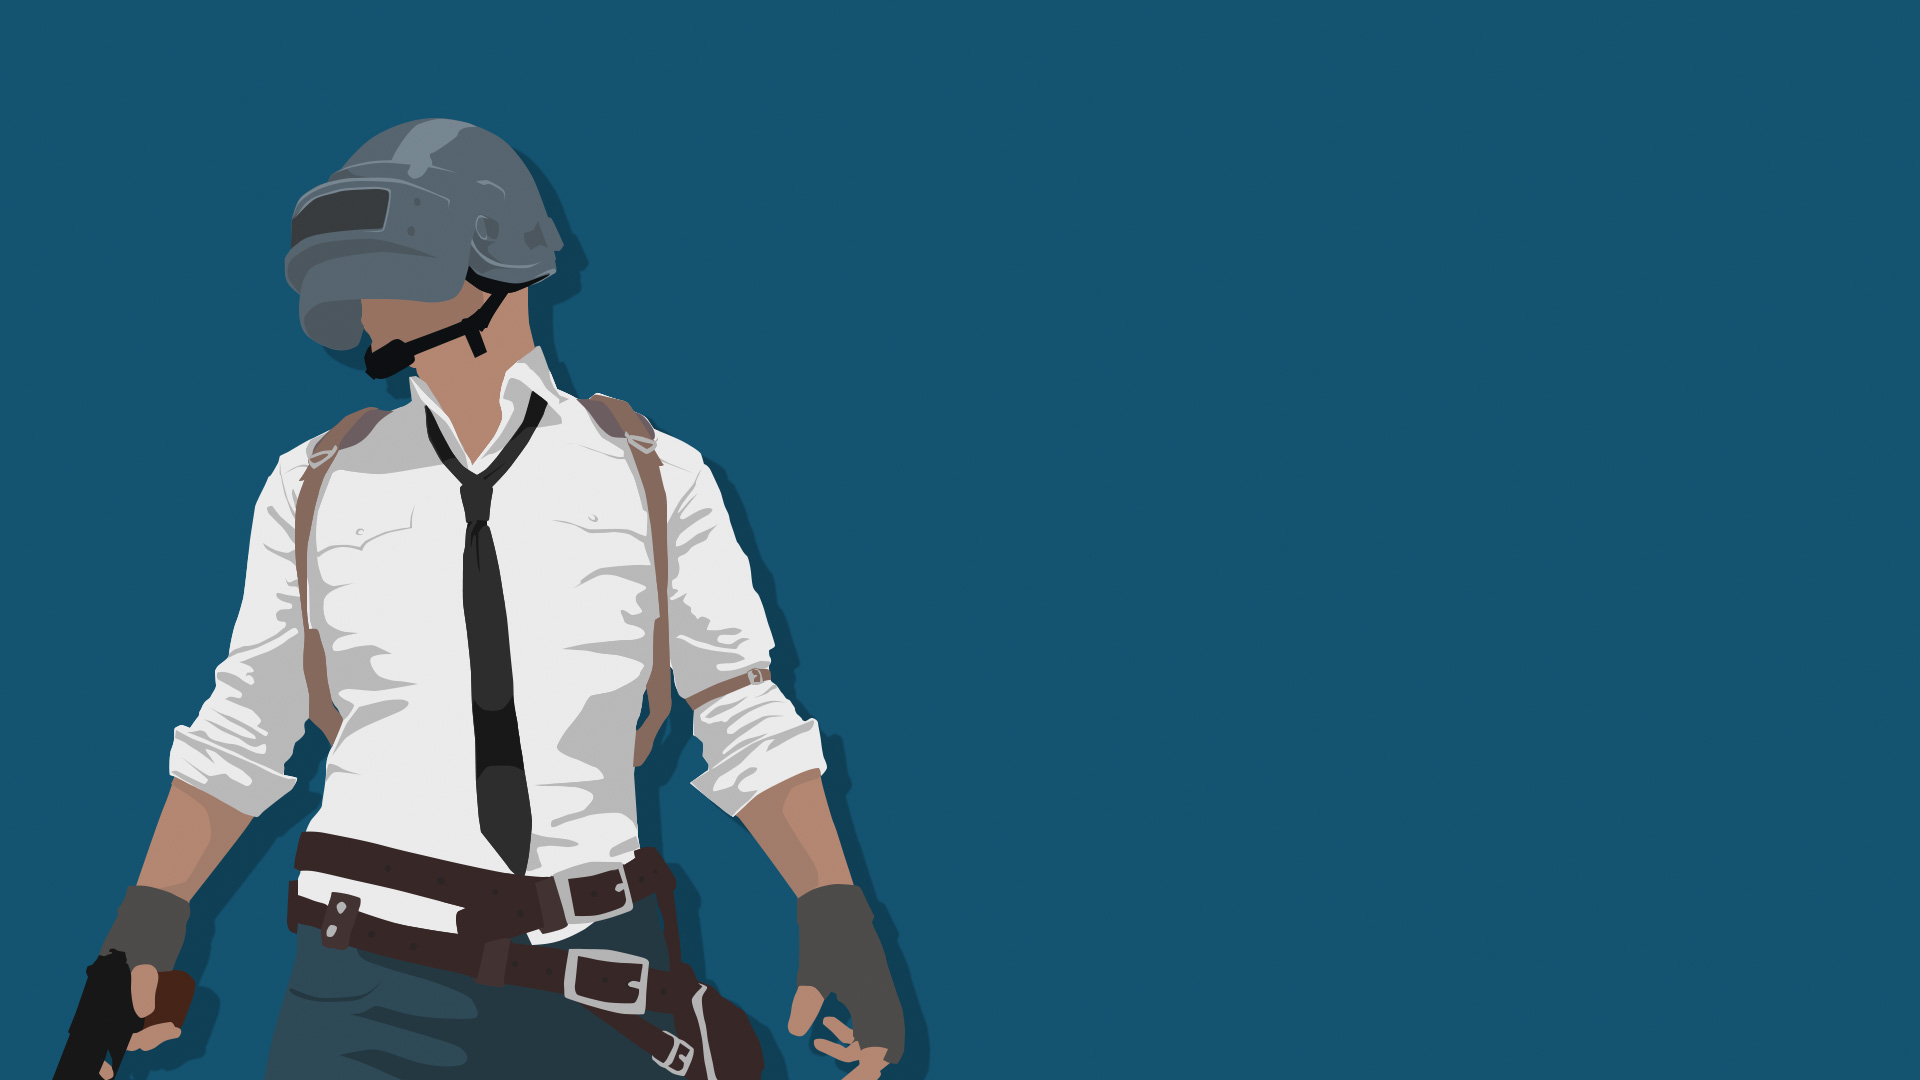 Pubg Minimalist Pophead Full Hd Wallpaper: Playerunknowns Battlegrounds Minimalism, HD Games, 4k